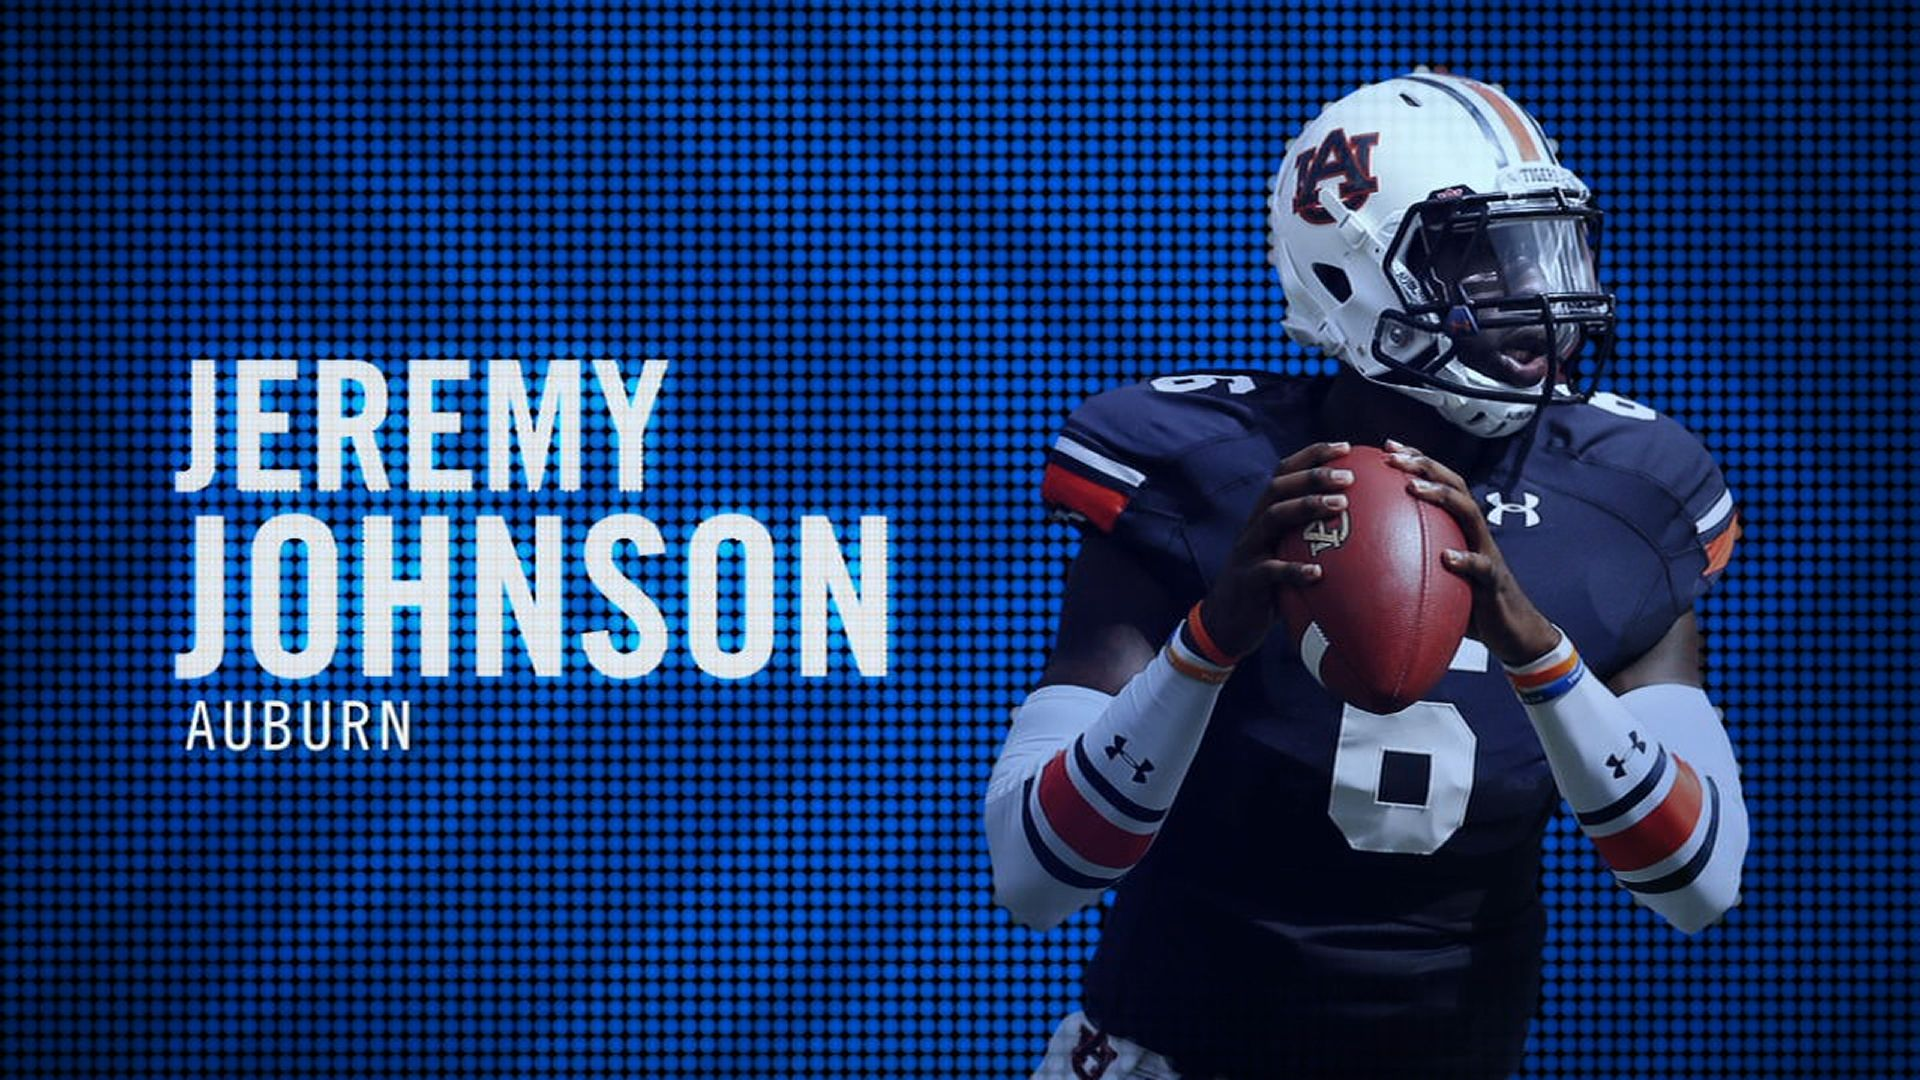 I am the SEC: Auburn's Jeremy Johnson